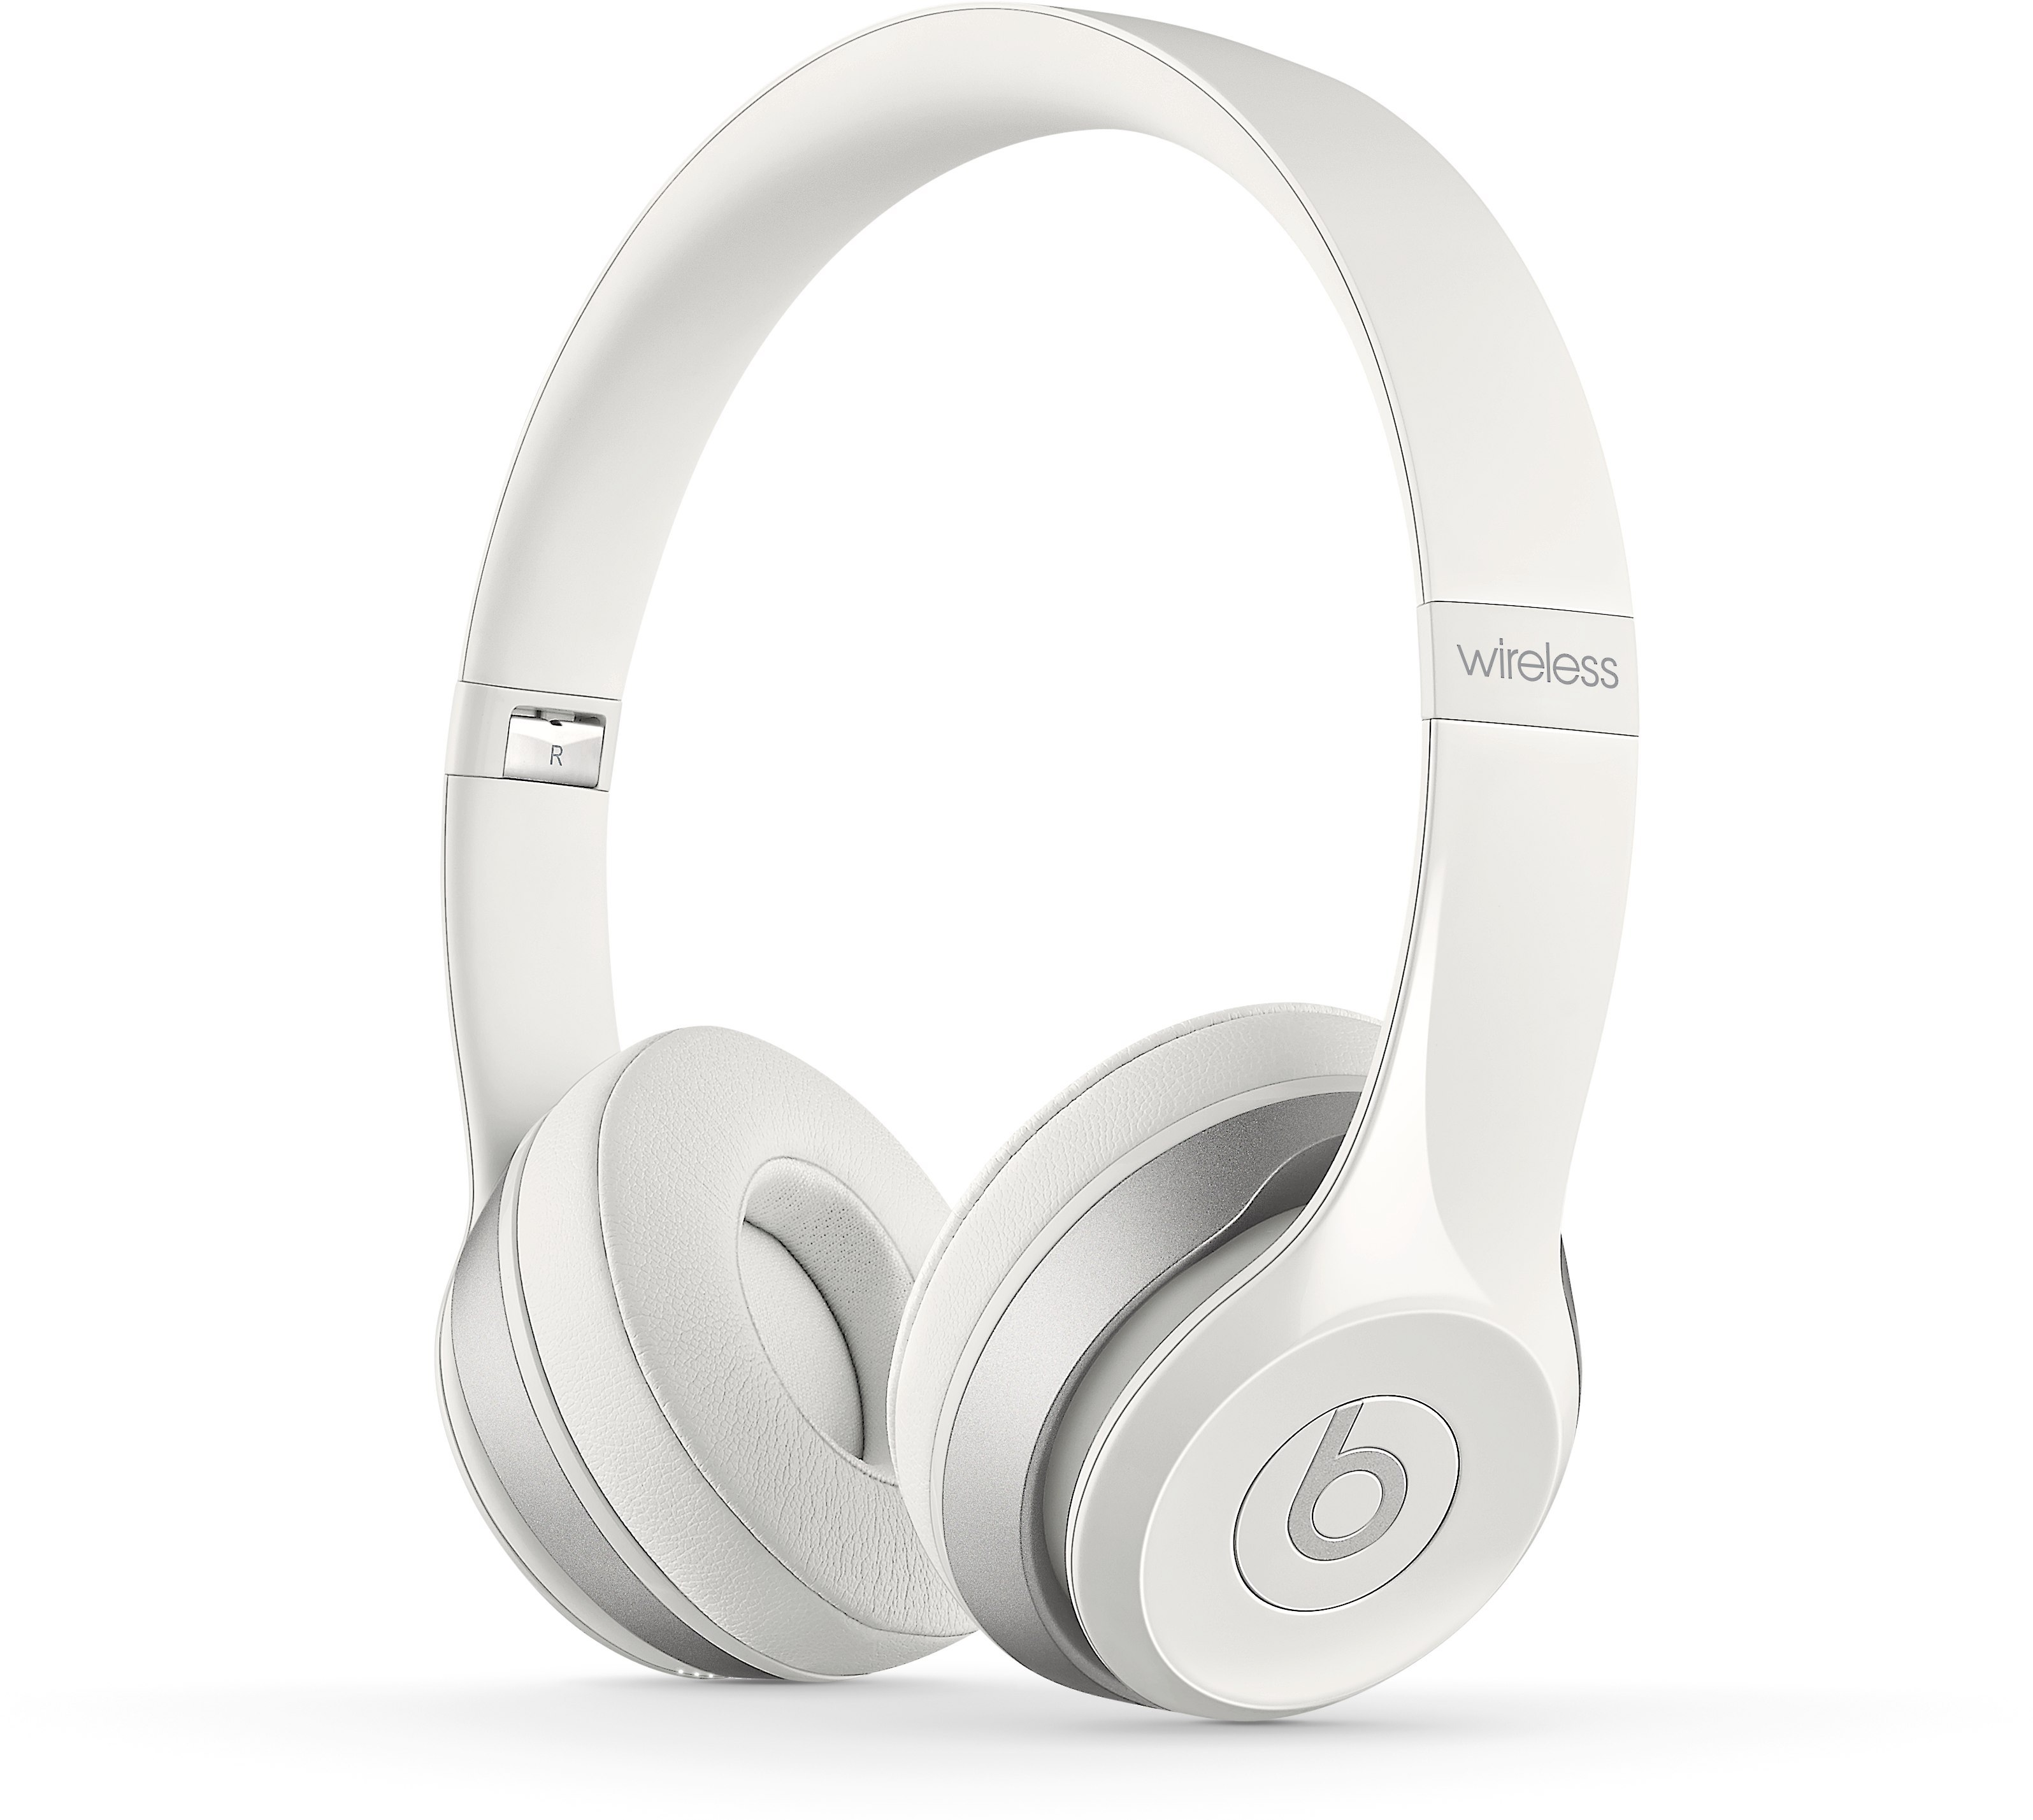 Beats by Dr. Dre® Solo2 Wireless (White) On-ear Headphone with Bluetooth®  at Crutchfield